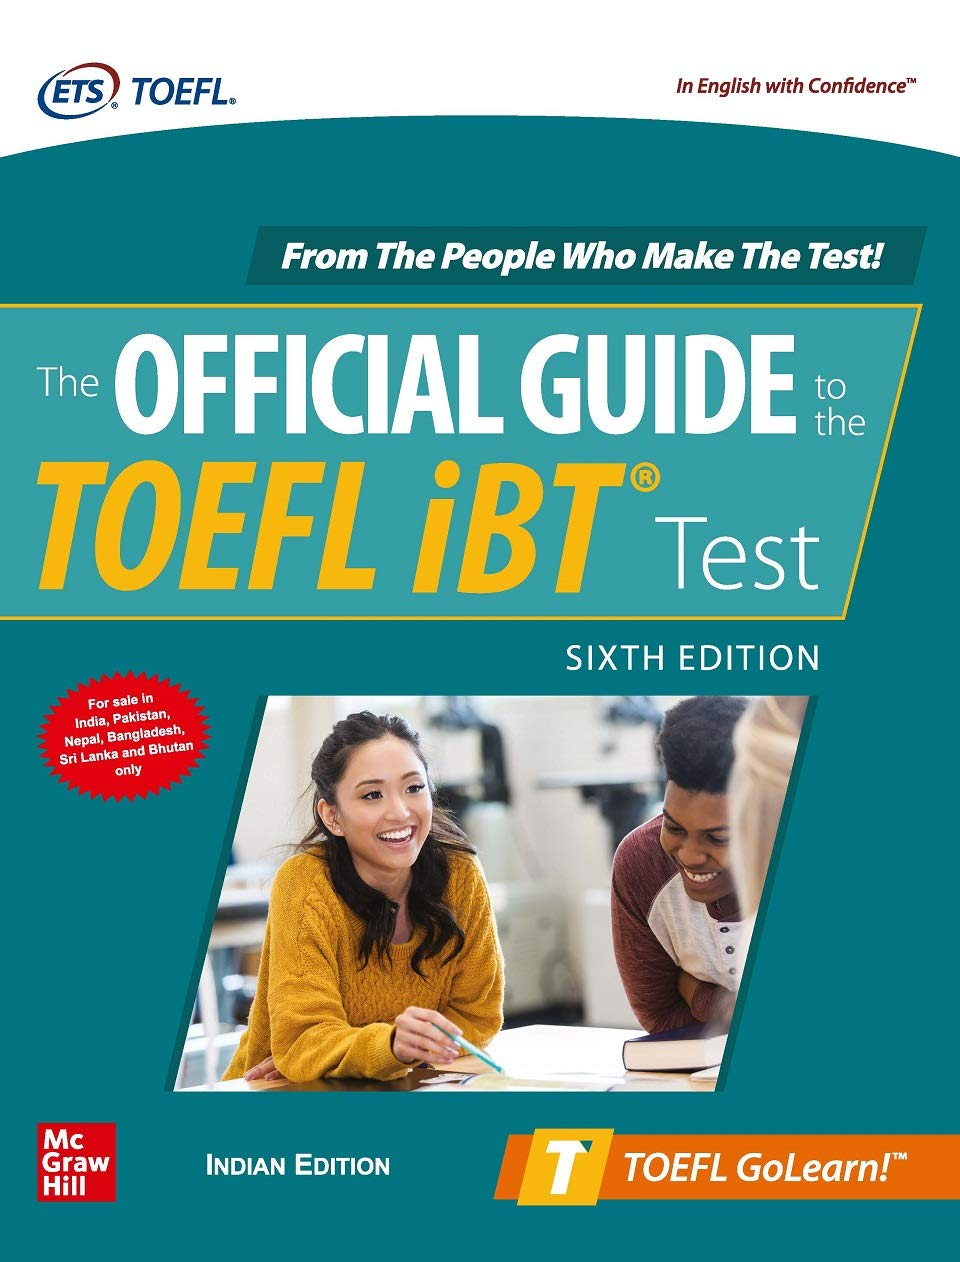 The Official Guide to the TOEFL iBT Test – Sixth Edition